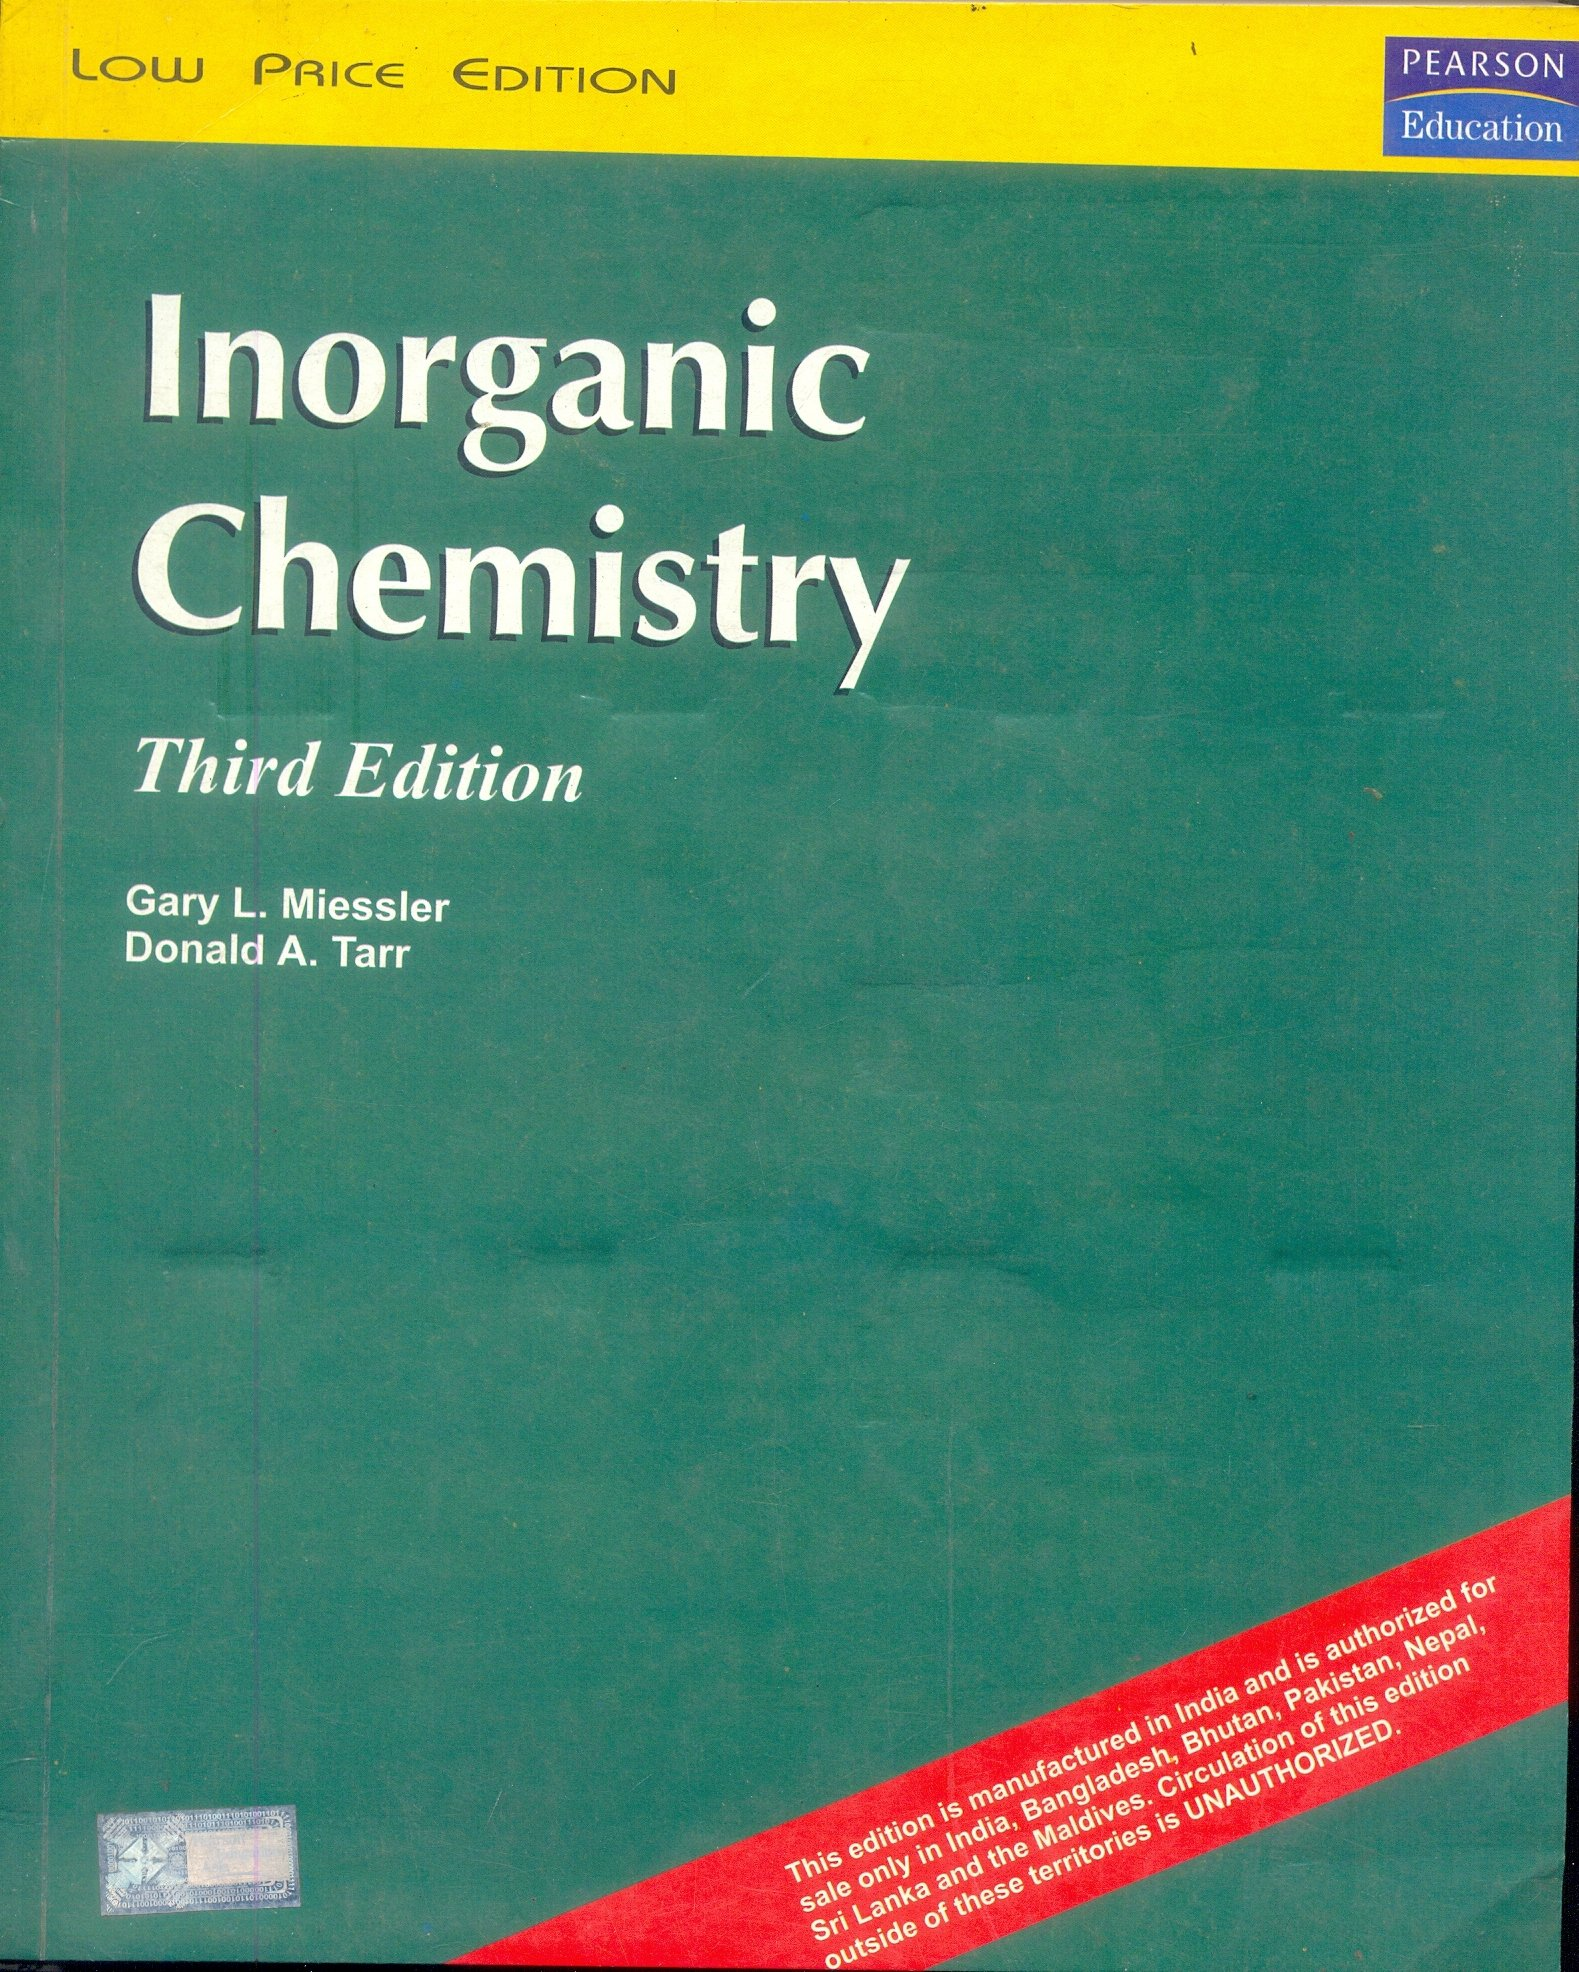 Mnl 8370 Inorganic Chemistry Miessler 2th Edition Solutions Manual